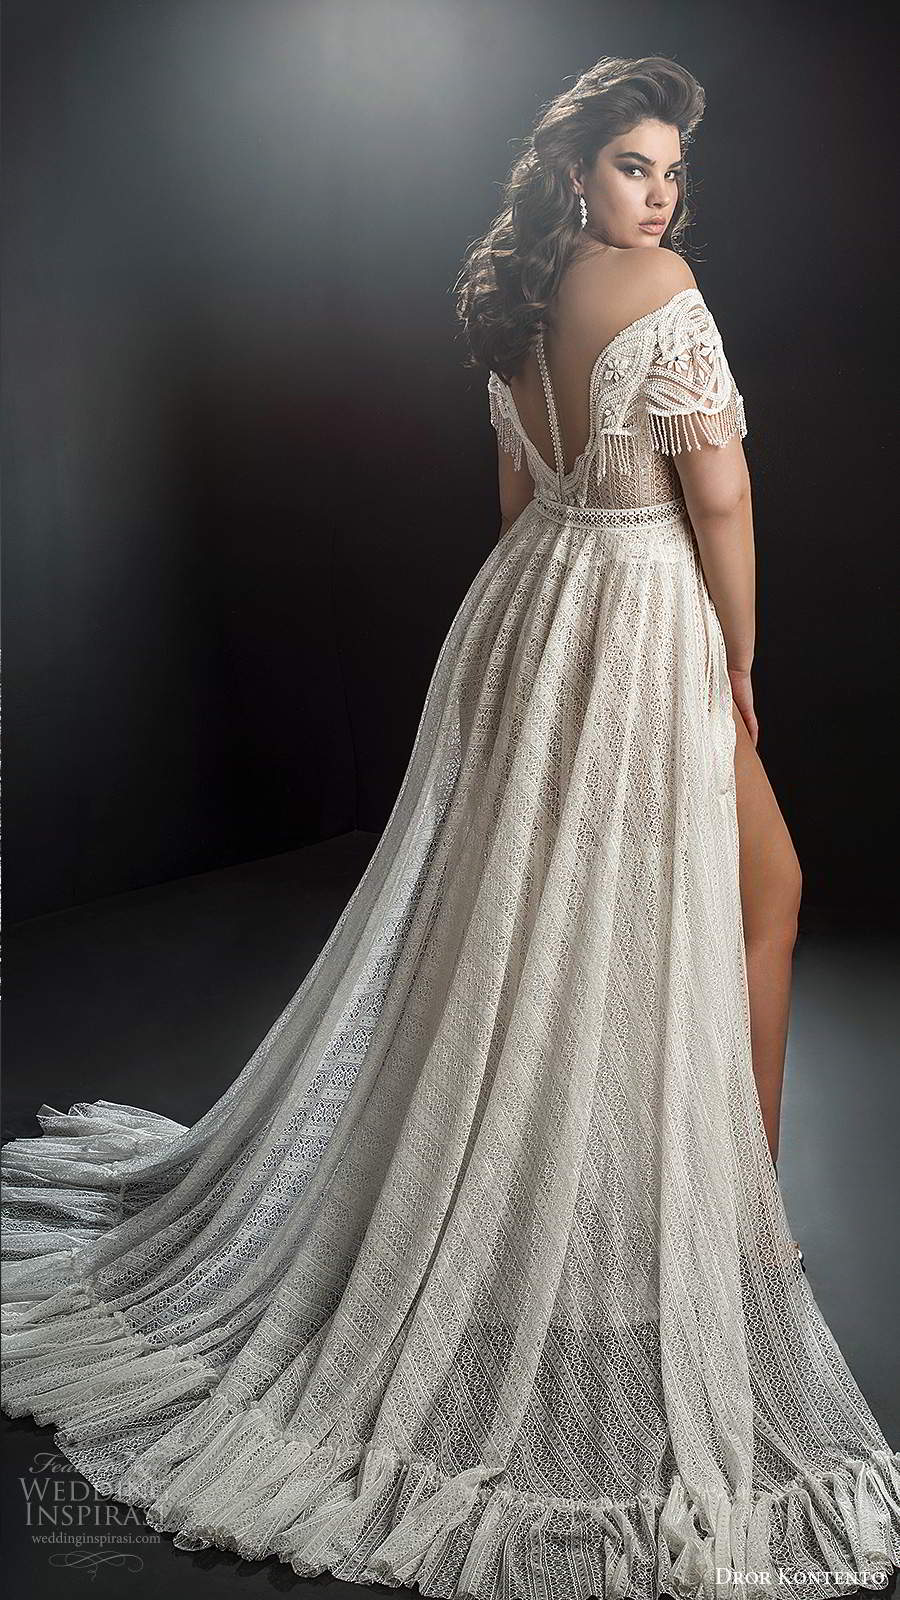 dror kontento 2019 bridal off shoulder sheer cap sleeves v neckline fully embellished a line ball gown wedding dress slit skirt chapel train (3) bv